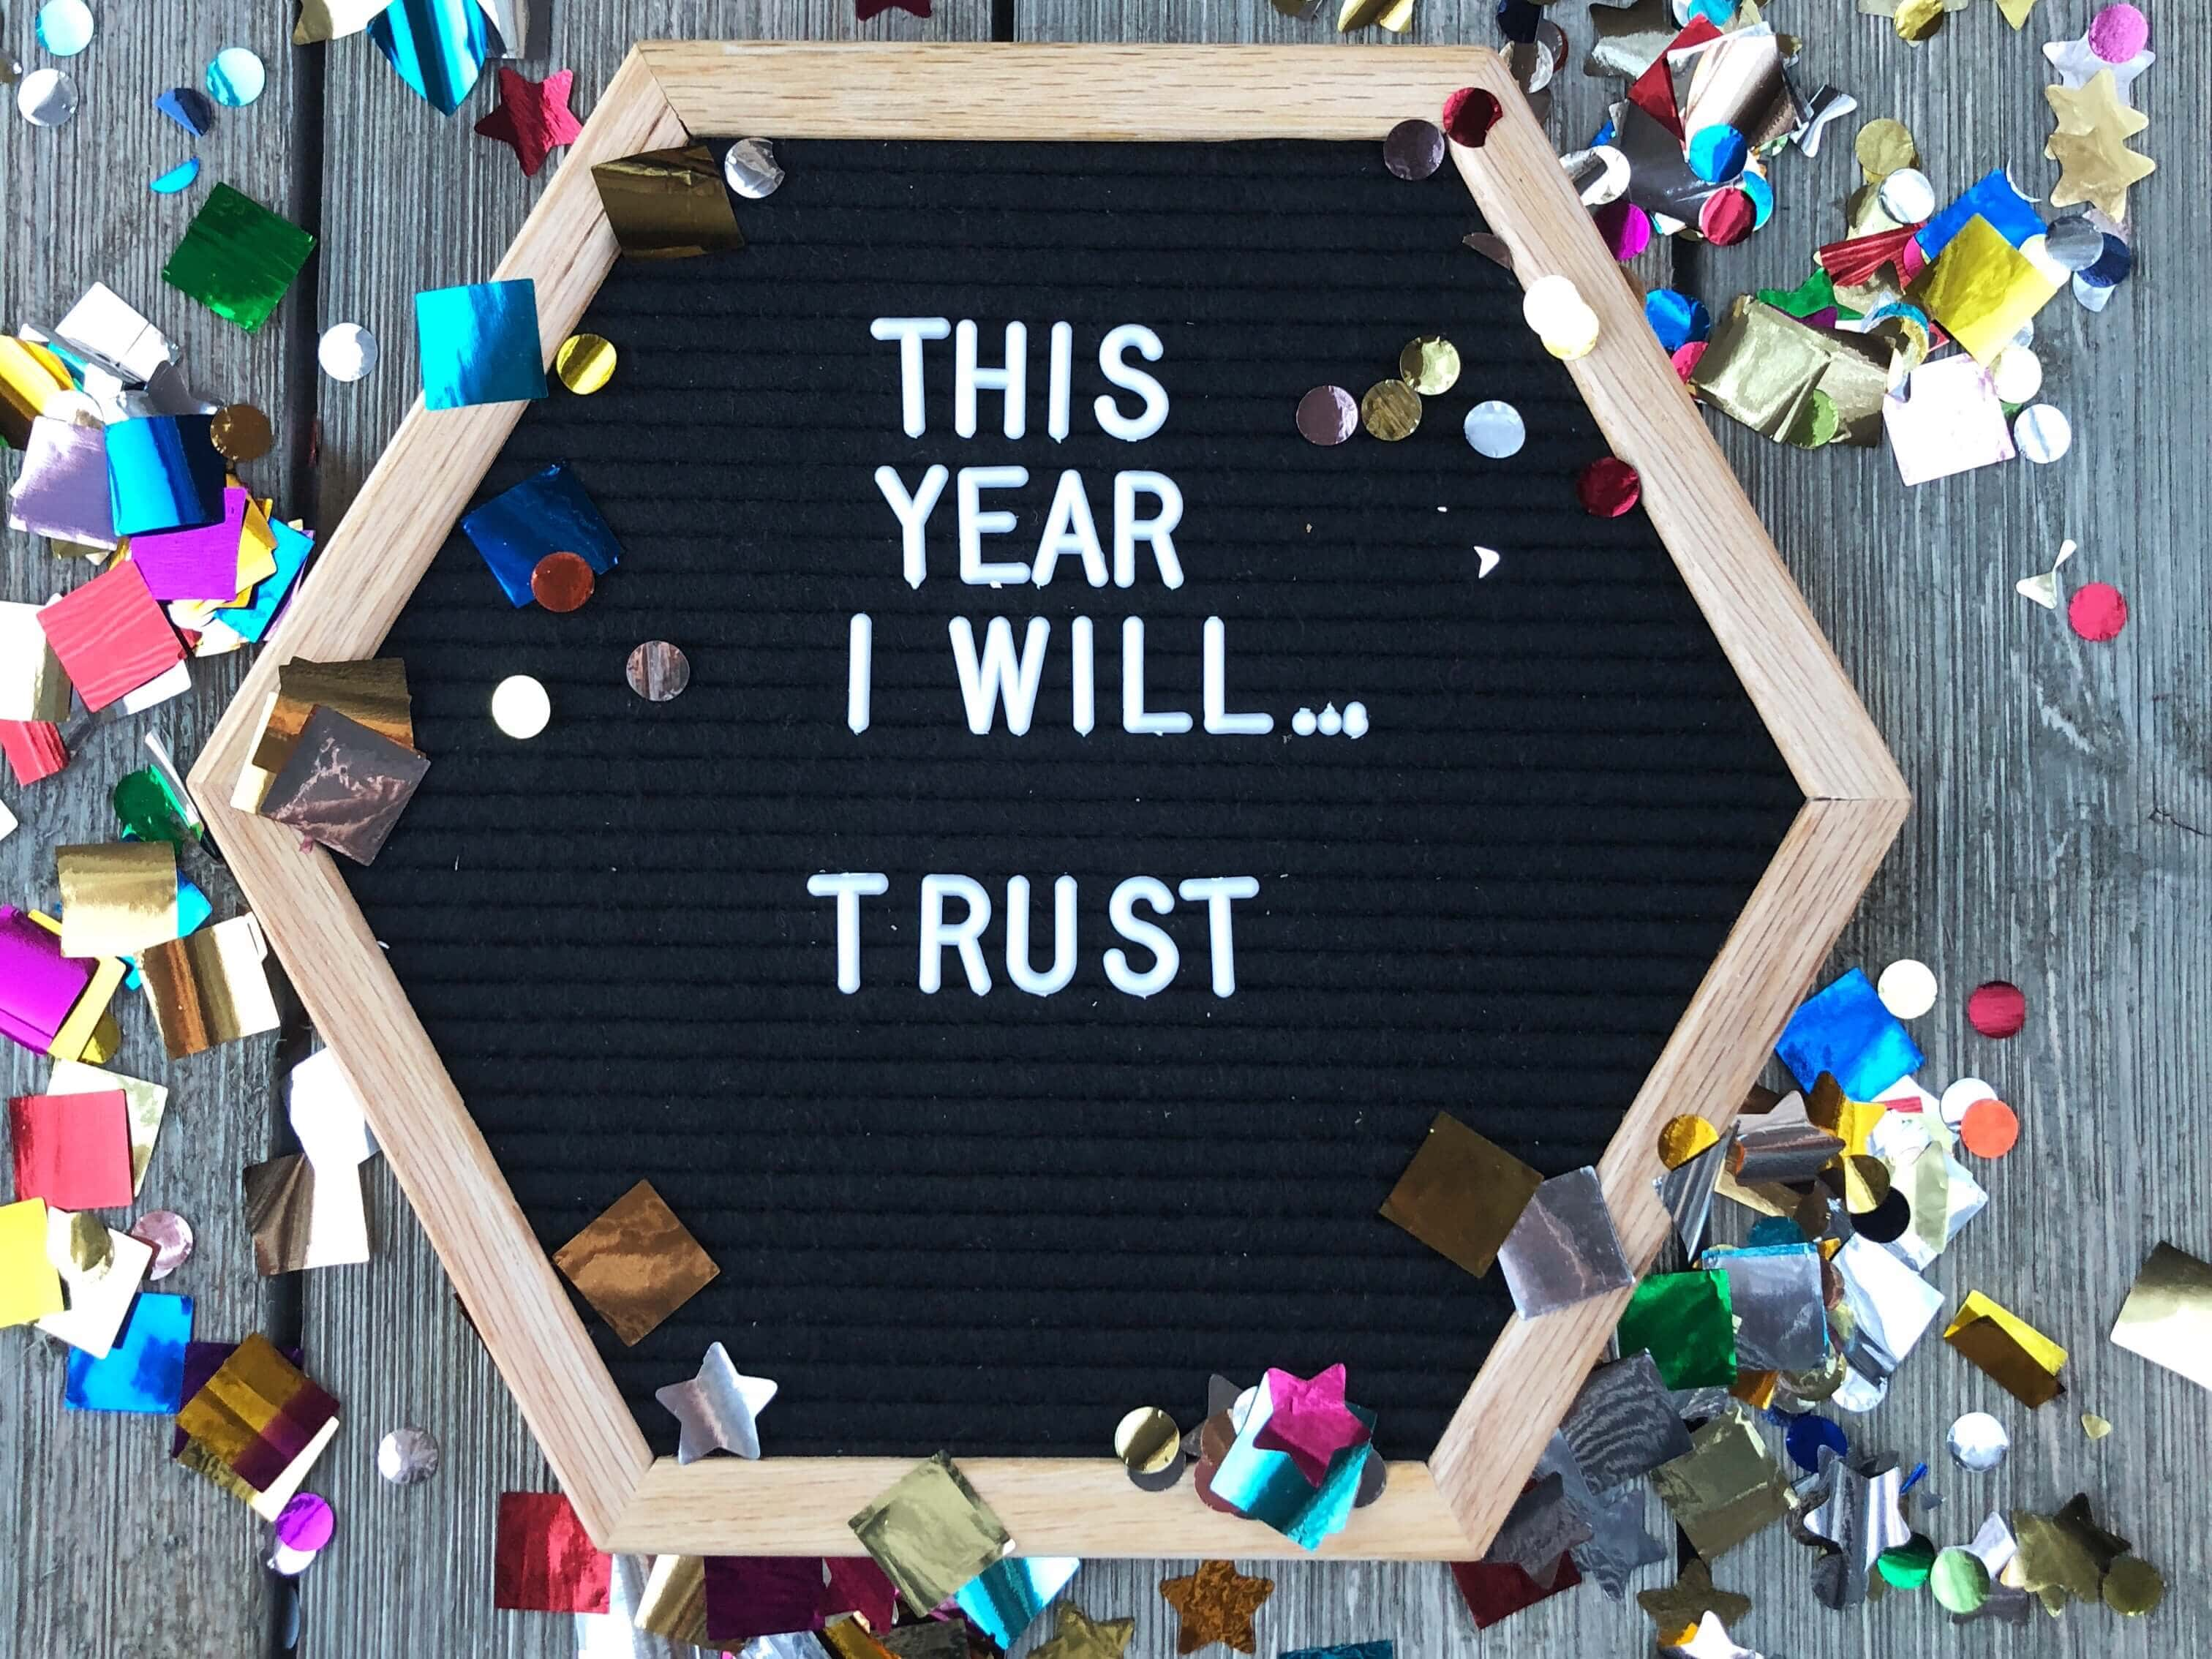 What is my one word instead of a new year's resolution this year? Trust.